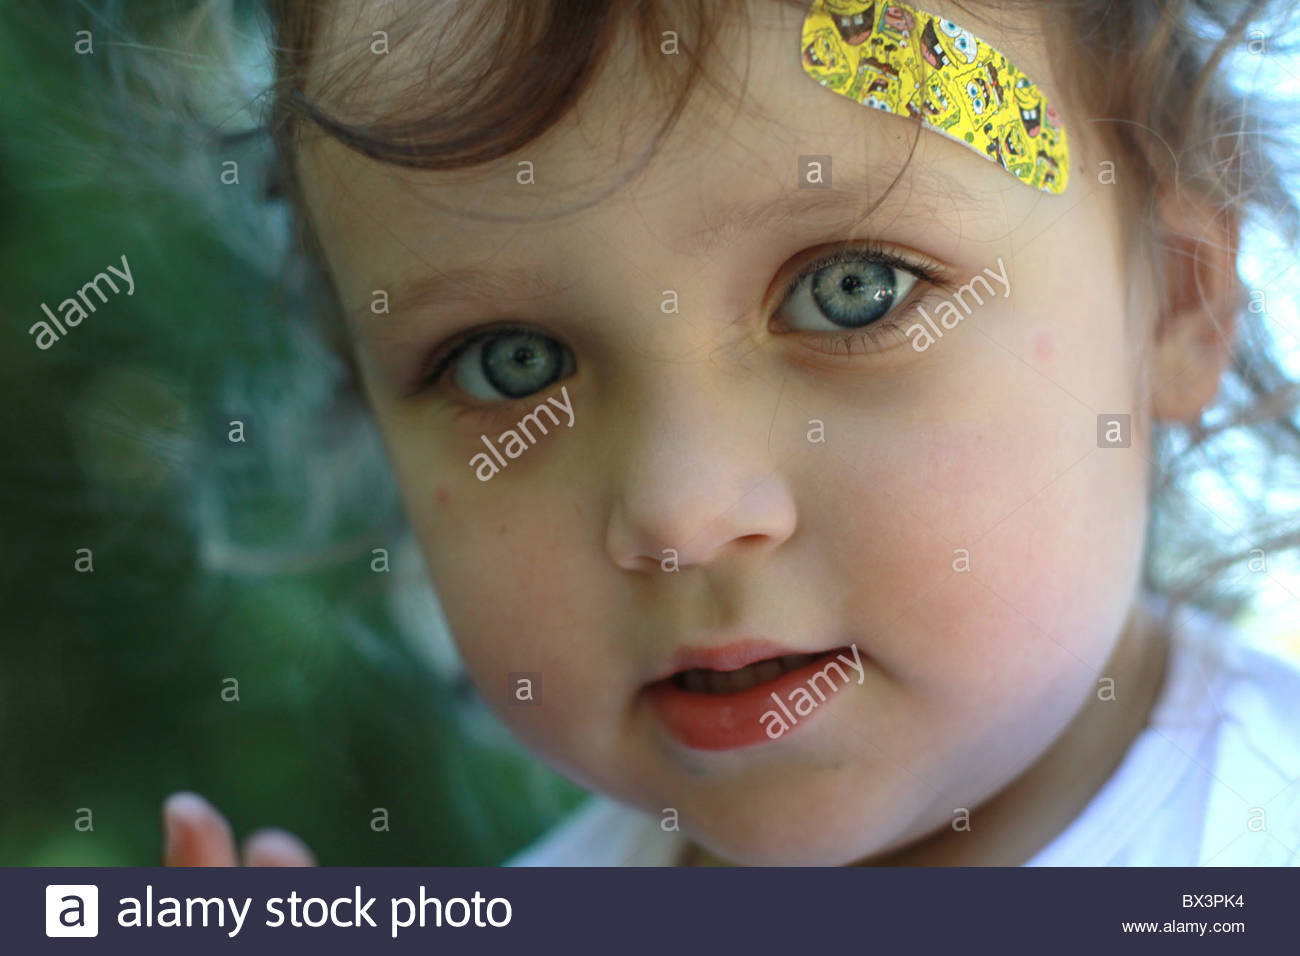 A Close Up Of A Two Year Old Girl With A Bandaid On Her Head Stock